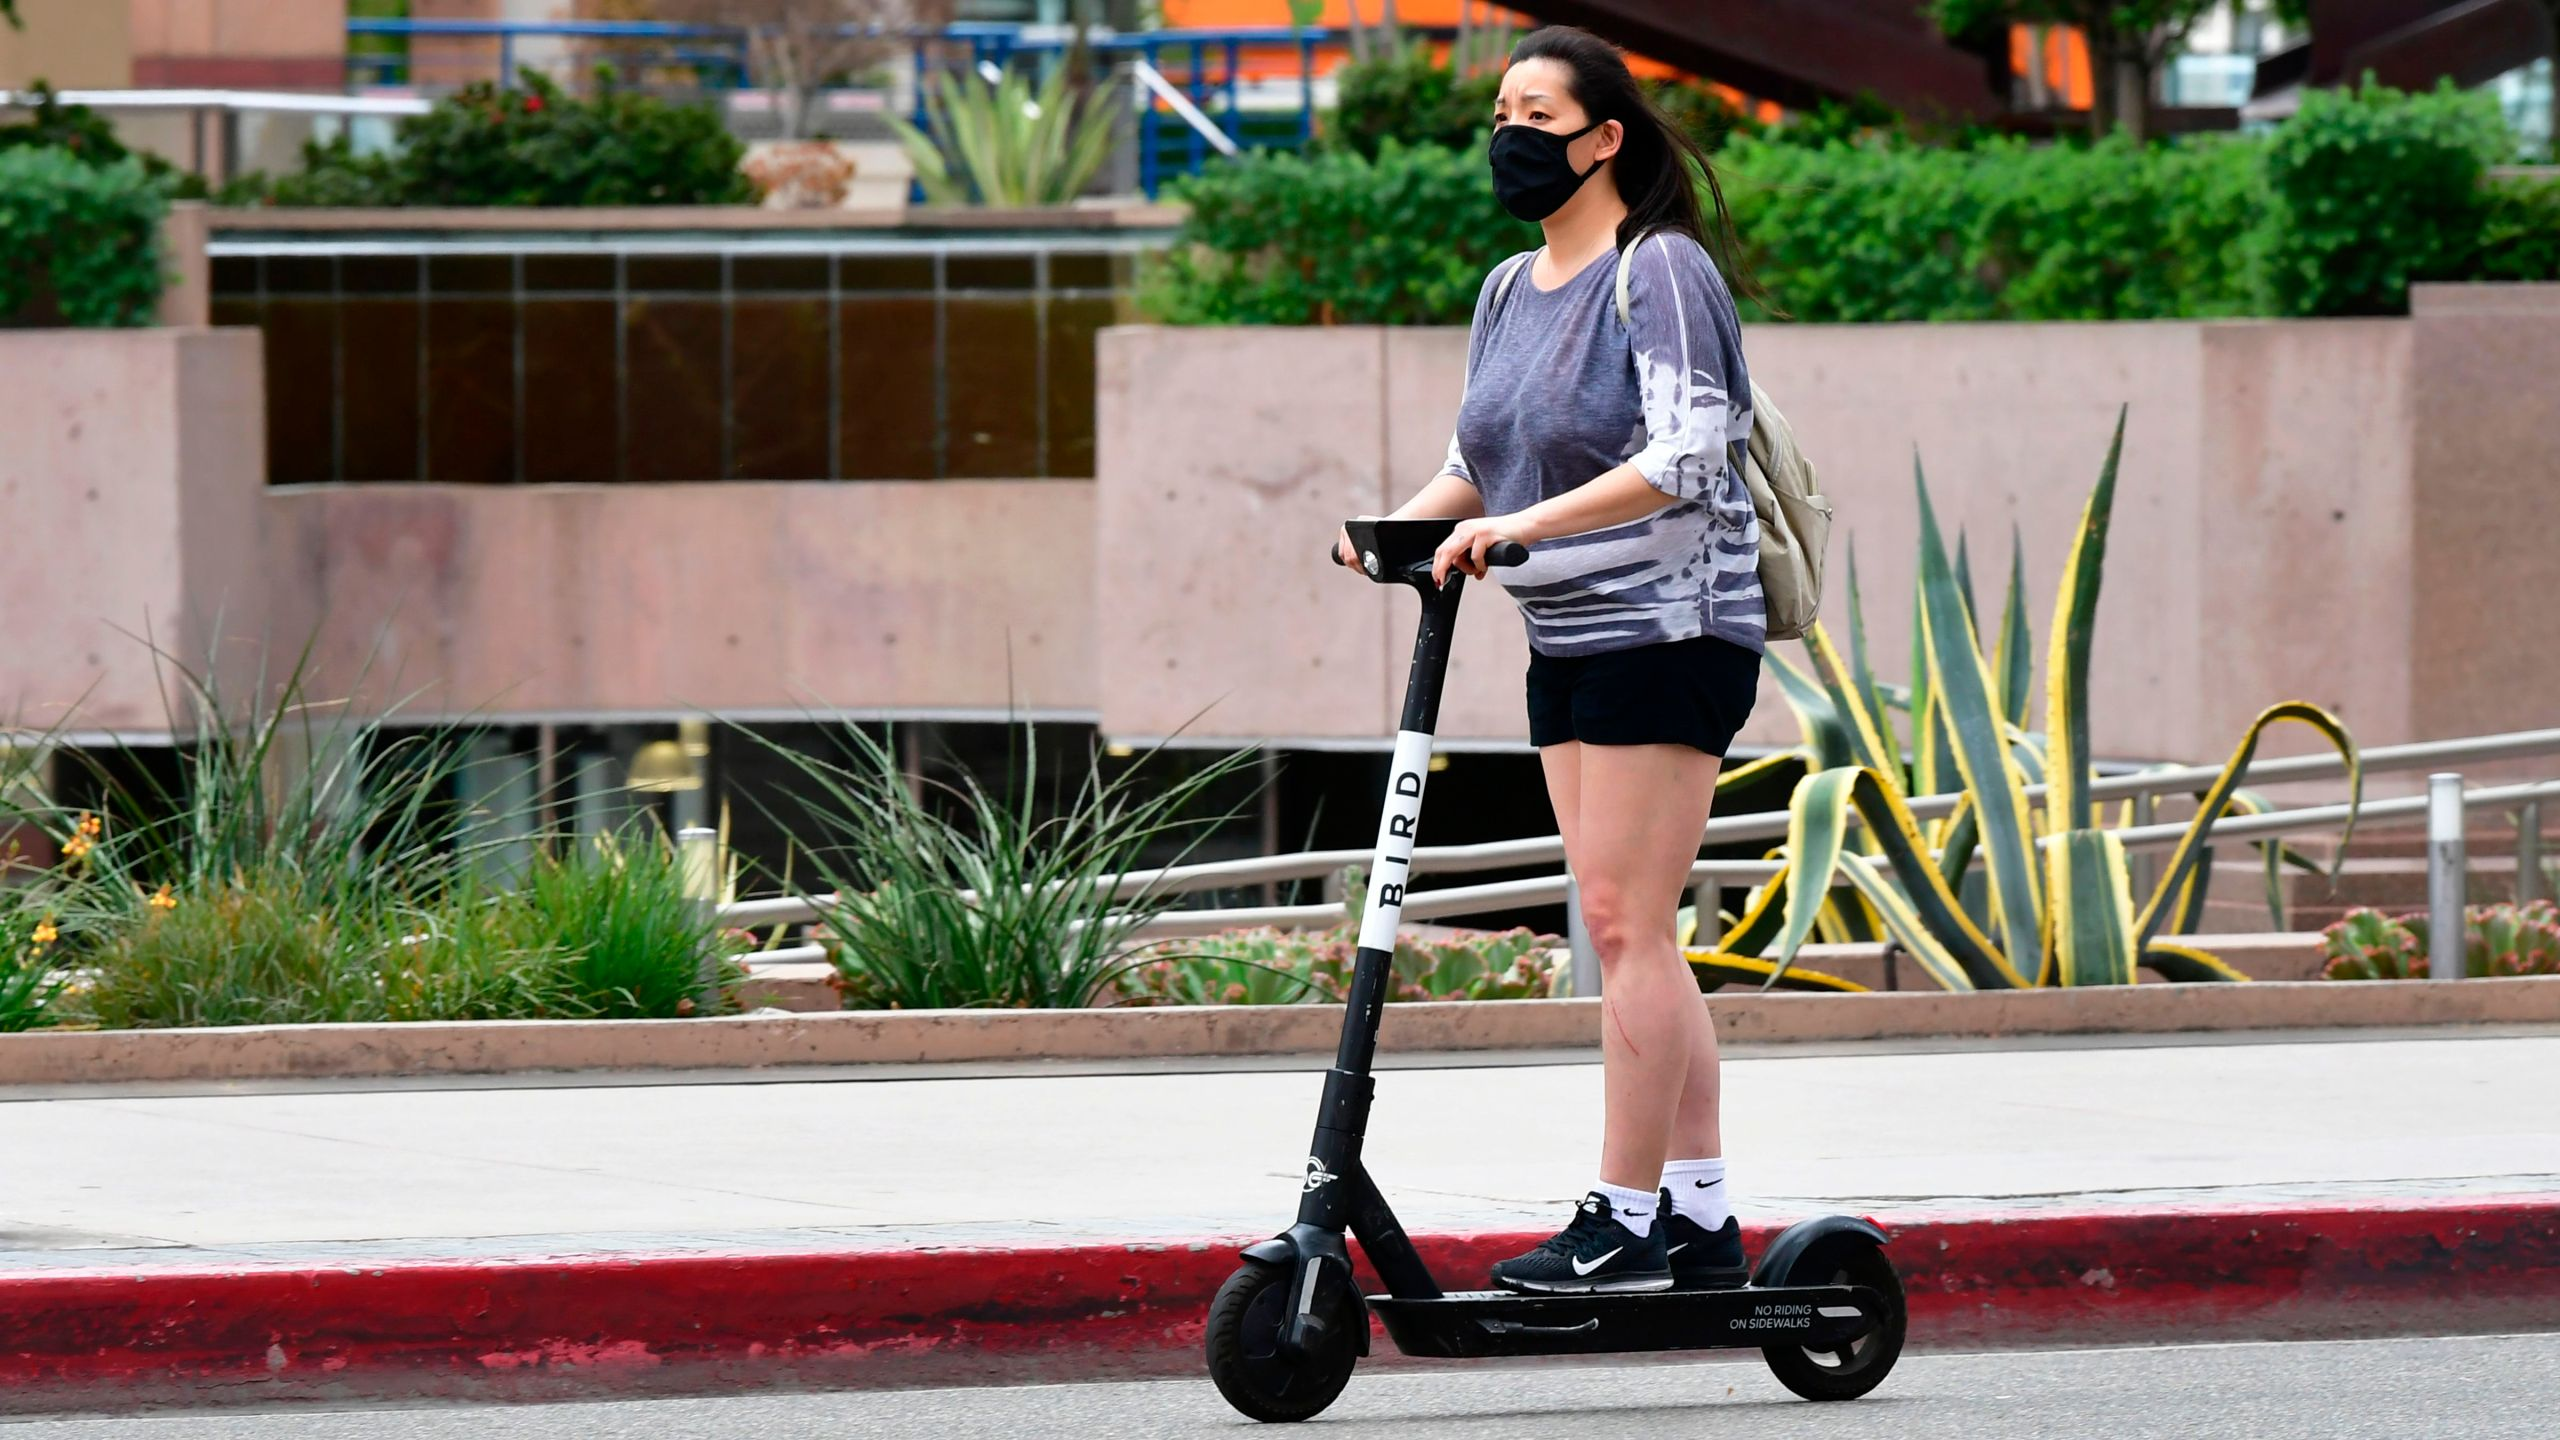 A commuter on electric scooter wears her facemask in Los Angeles on June 29, 2020. (FREDERIC J. BROWN/AFP via Getty Images)